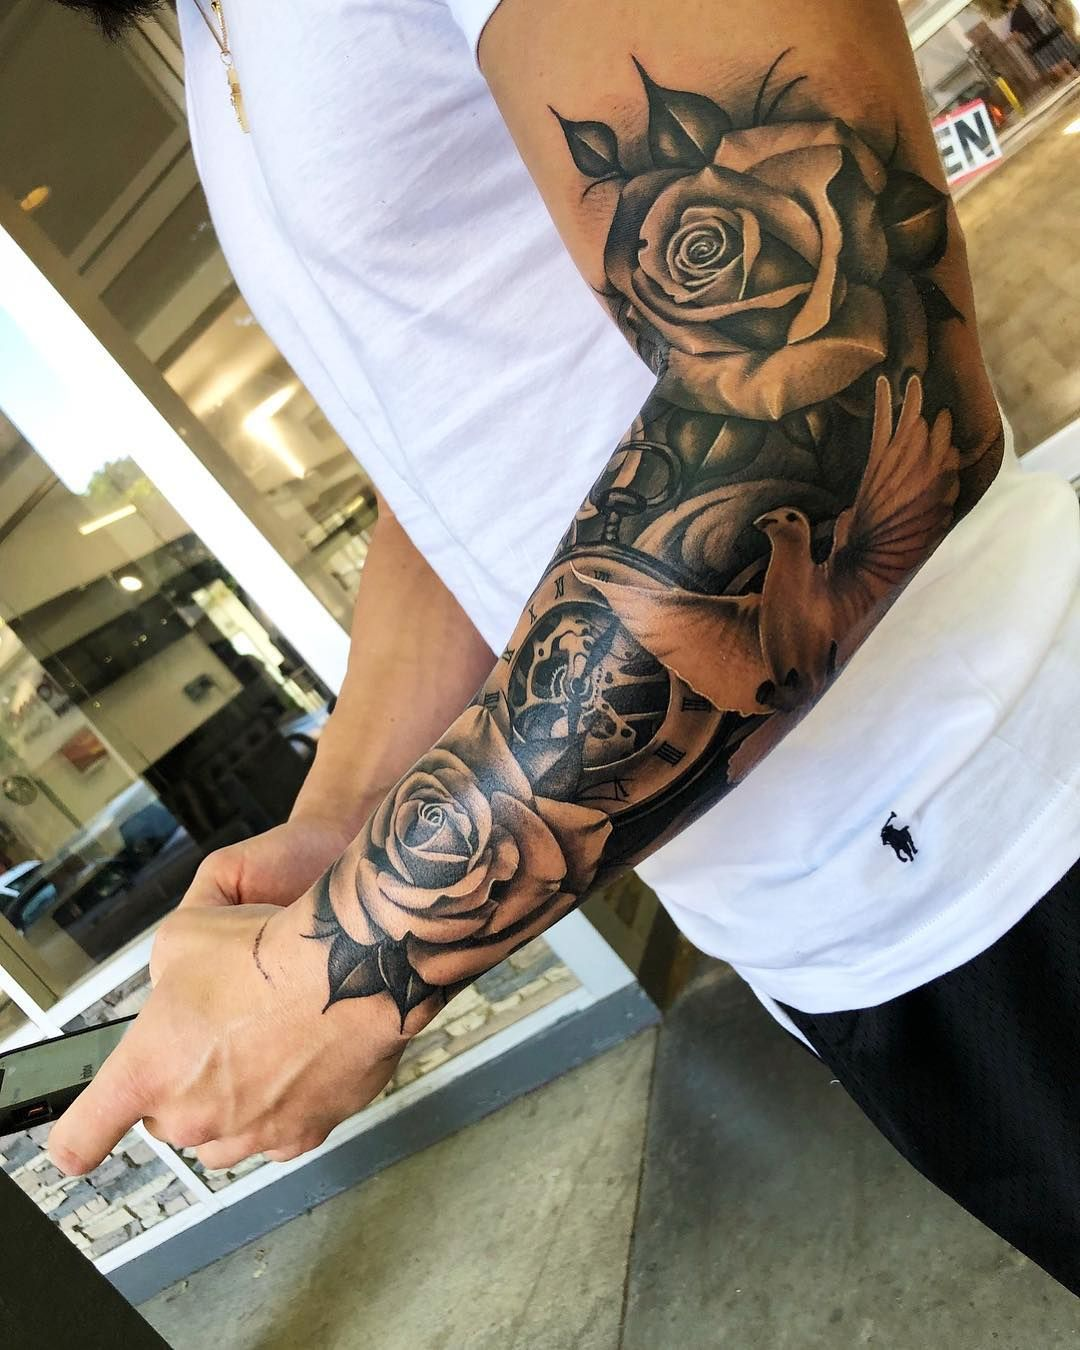 Pin By Epul On Rose Tattoos Cool Half Sleeve Tattoos Half Sleeve Tattoos For Guys Tattoo Sleeve Designs